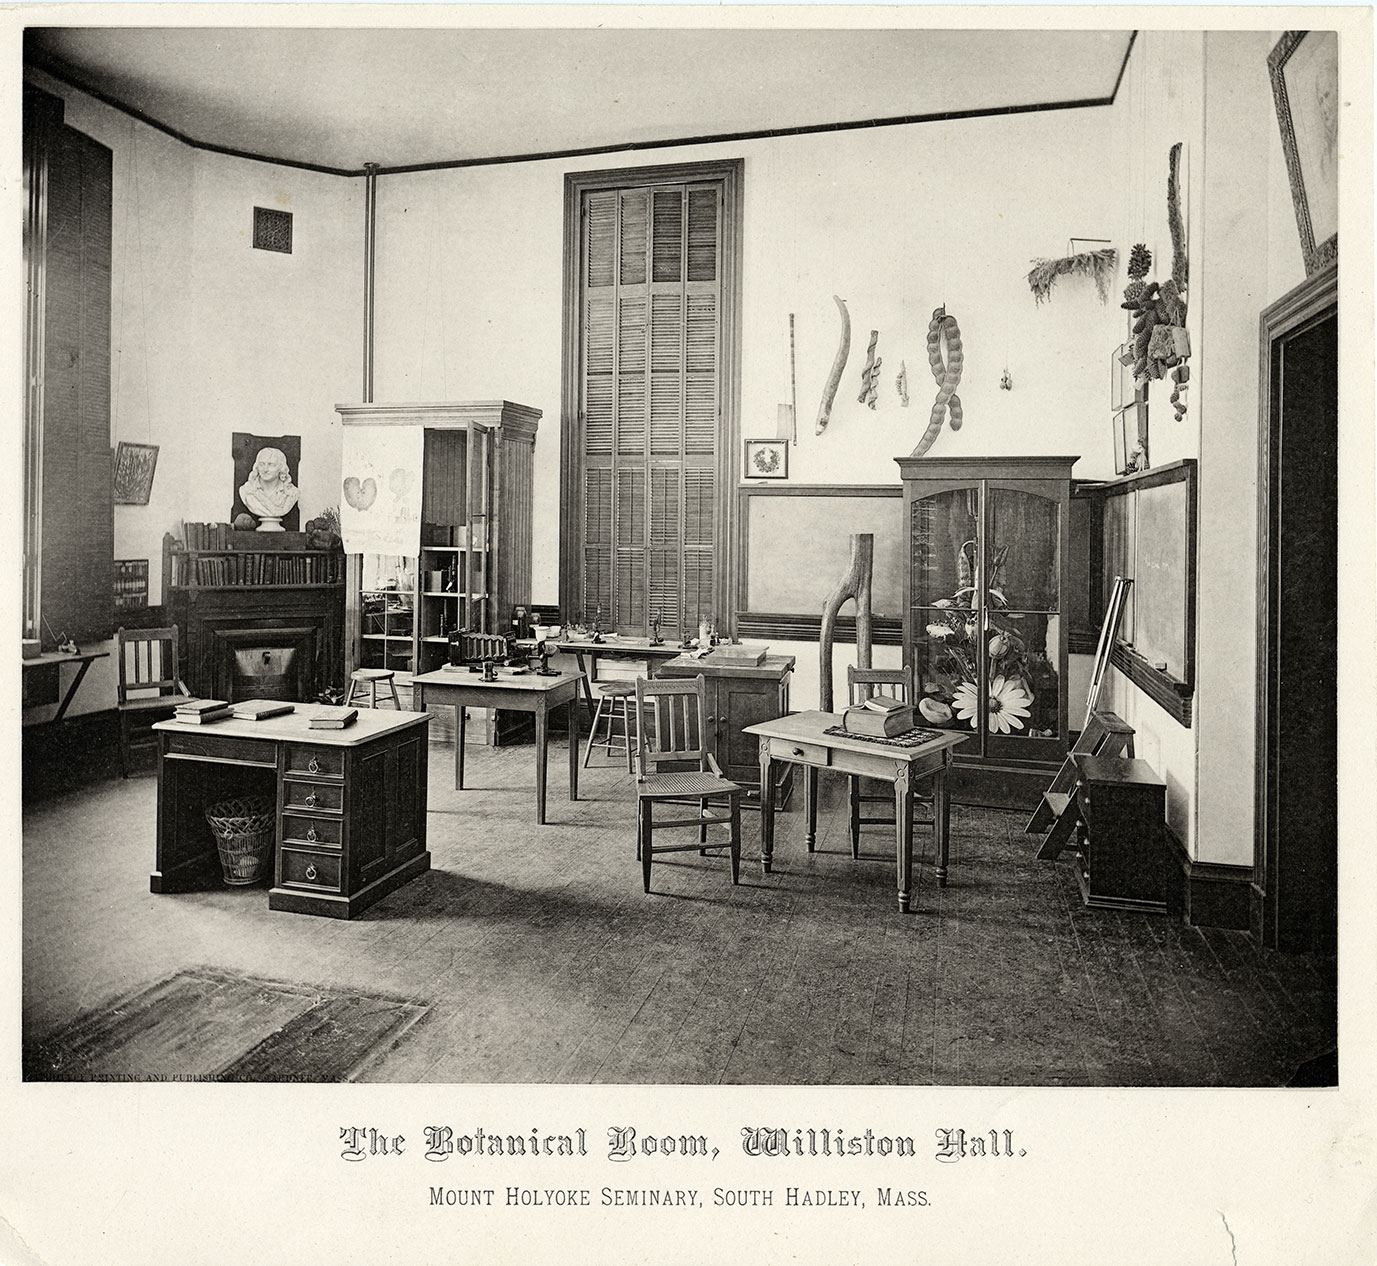 Williston Hall, 1890s